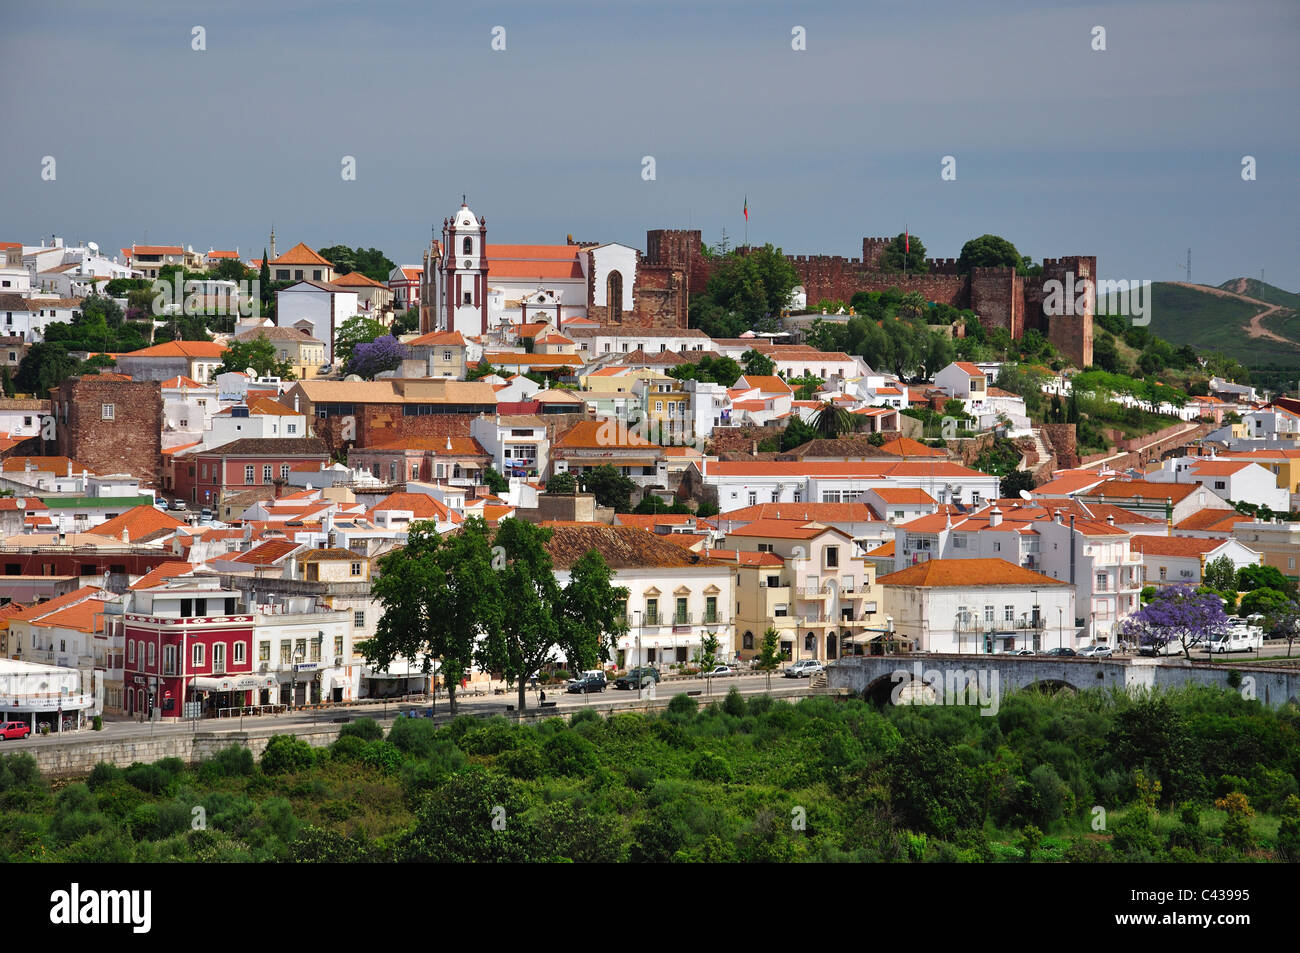 View of hillside town and castle, Silves, Silves Municipality, Faro District, Algarve Region, Portugal - Stock Image